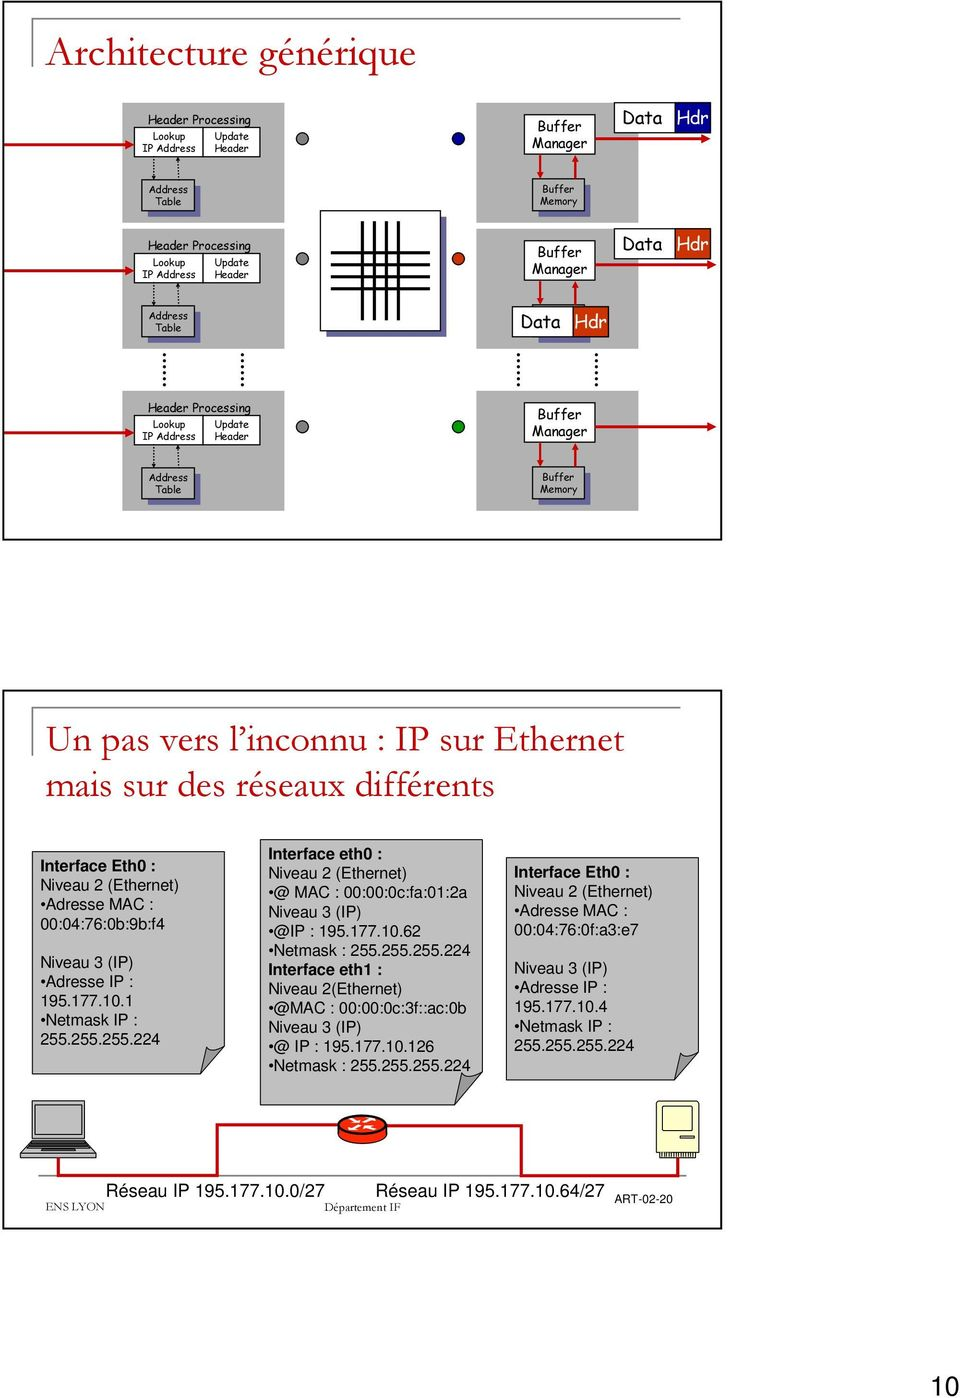 Address Table Table Buffer Buffer Memory Memory ART-02-9 Un pas vers l inconnu : IP sur Ethernet mais sur des réseaux différents Interface Eth0 : Niveau 2 (Ethernet) Adresse MAC : 00:04:76:0b:9b:f4